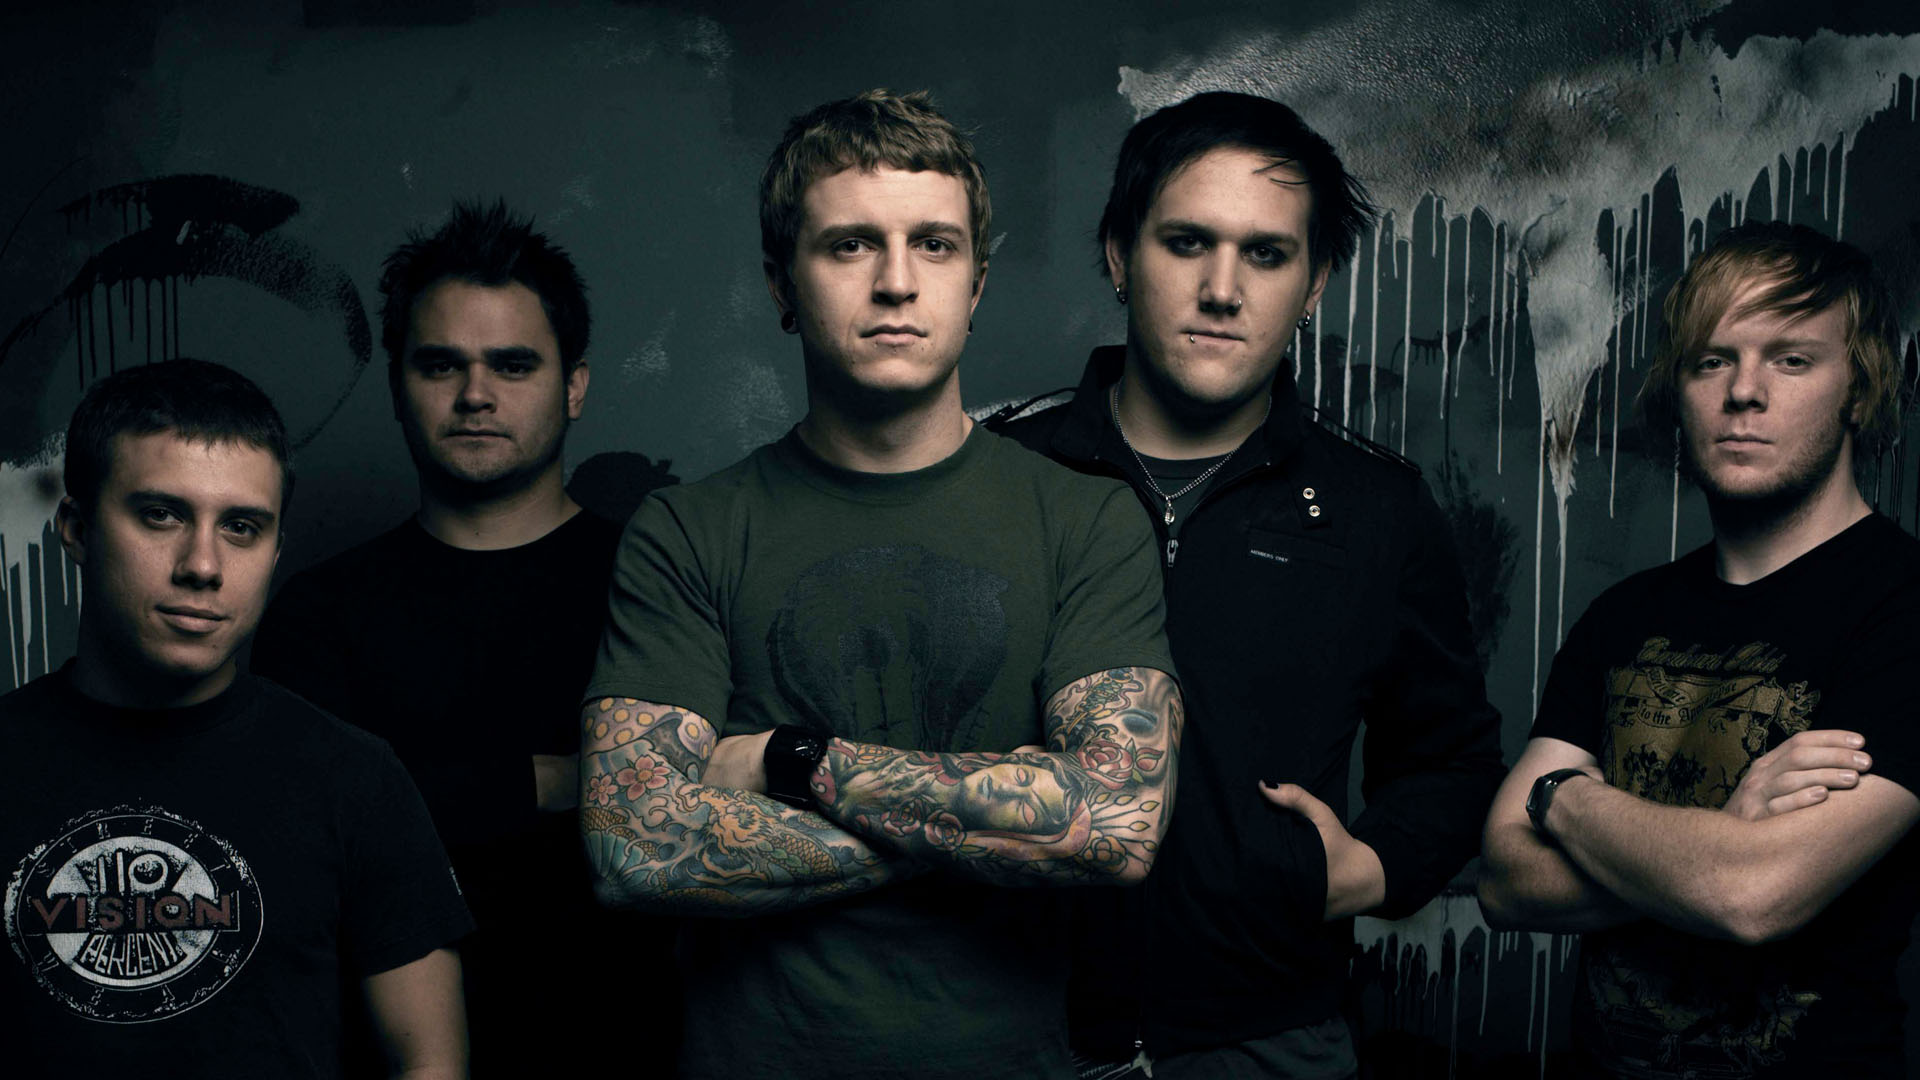 7 atreyu hd wallpapers